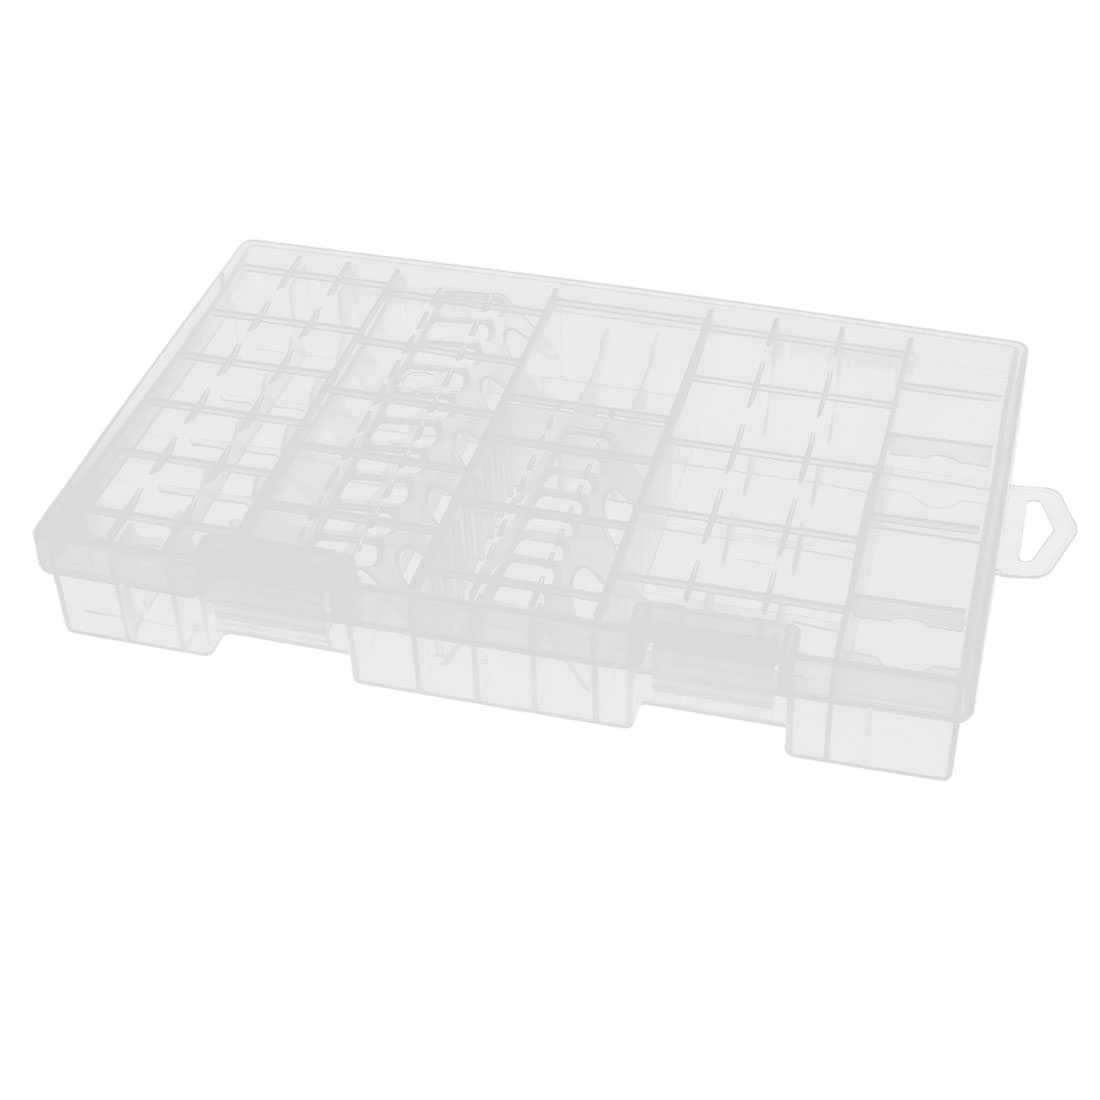 Clear Plastic Rectangle Battery Storage Box Case Container Holder 255mm x 165mm x 36mm